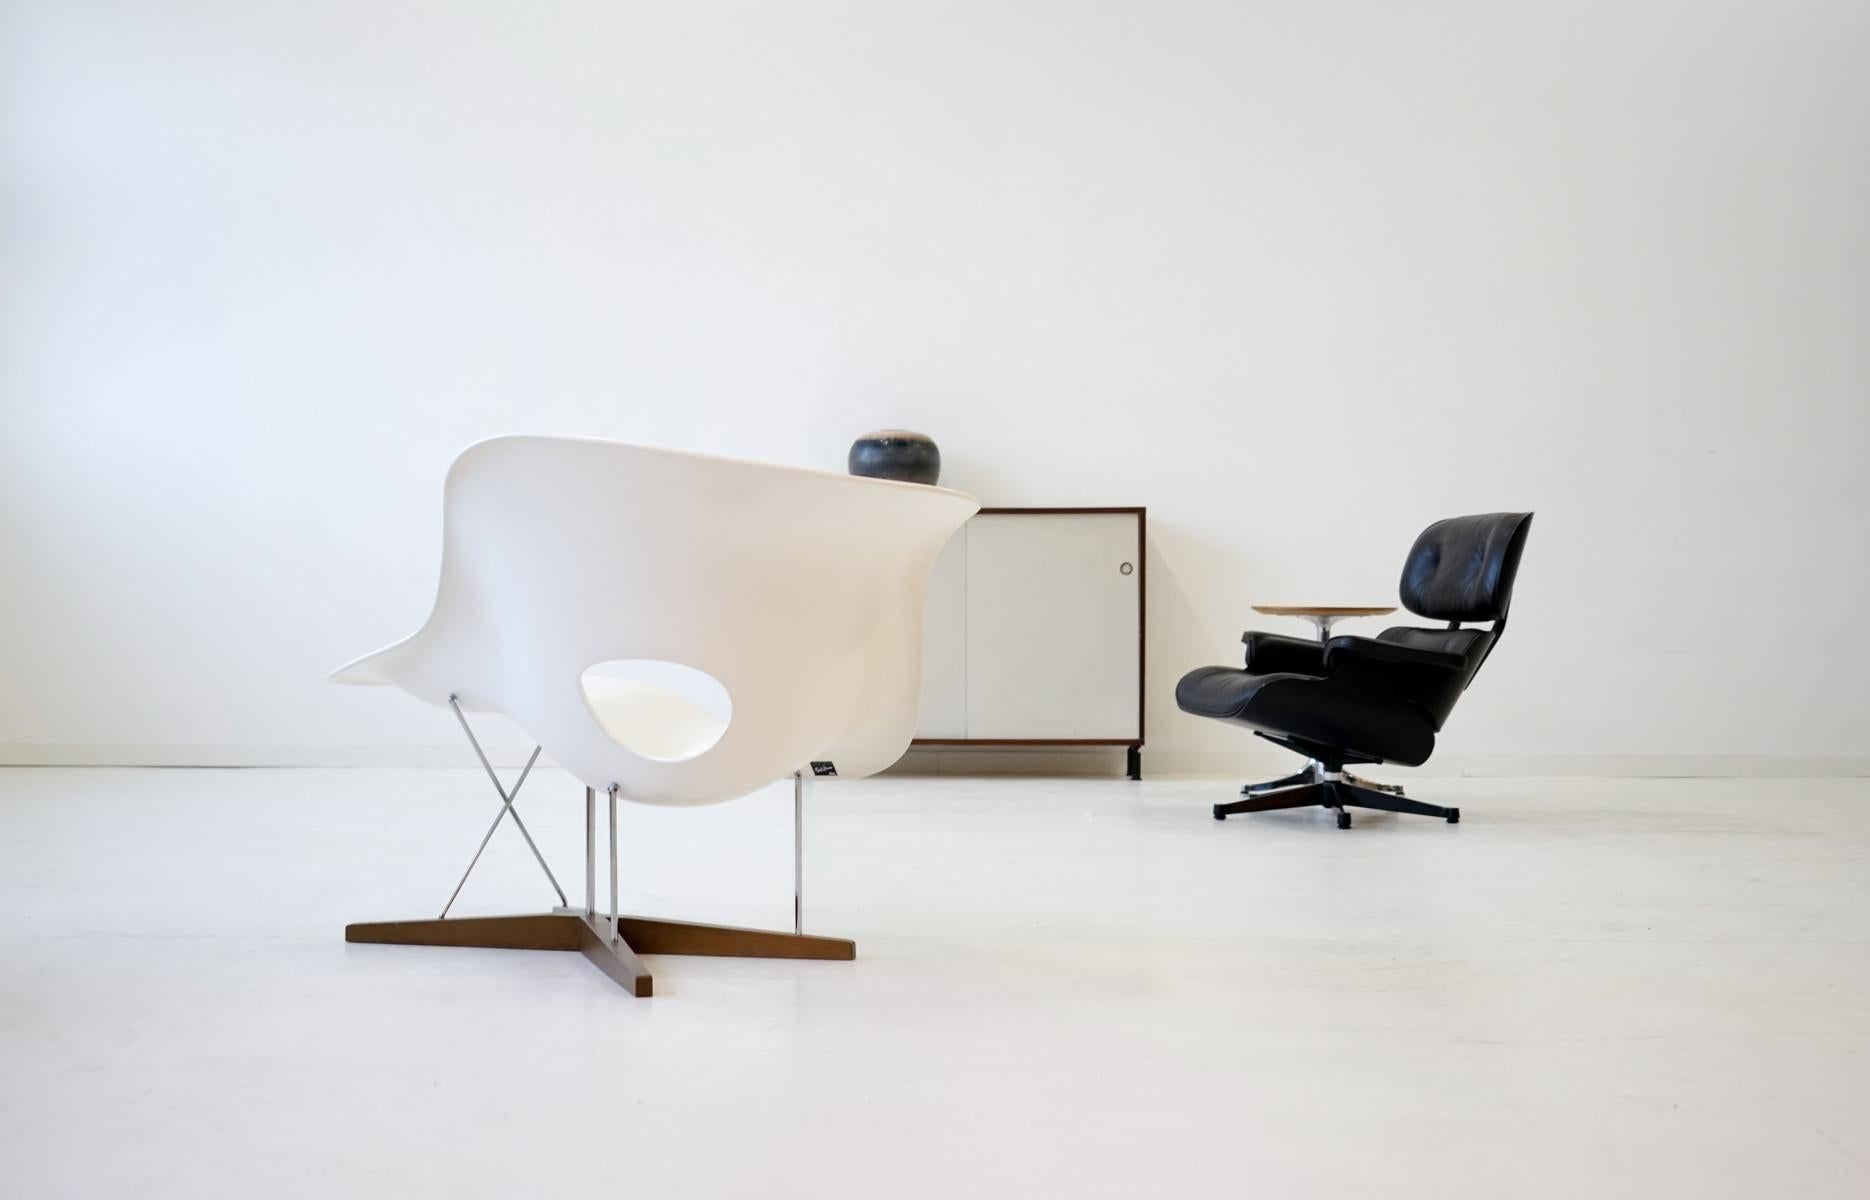 Mid 20th Century La Chaise By Eames For Vitra Chaise Lounge Recliner Chair  Armchair For